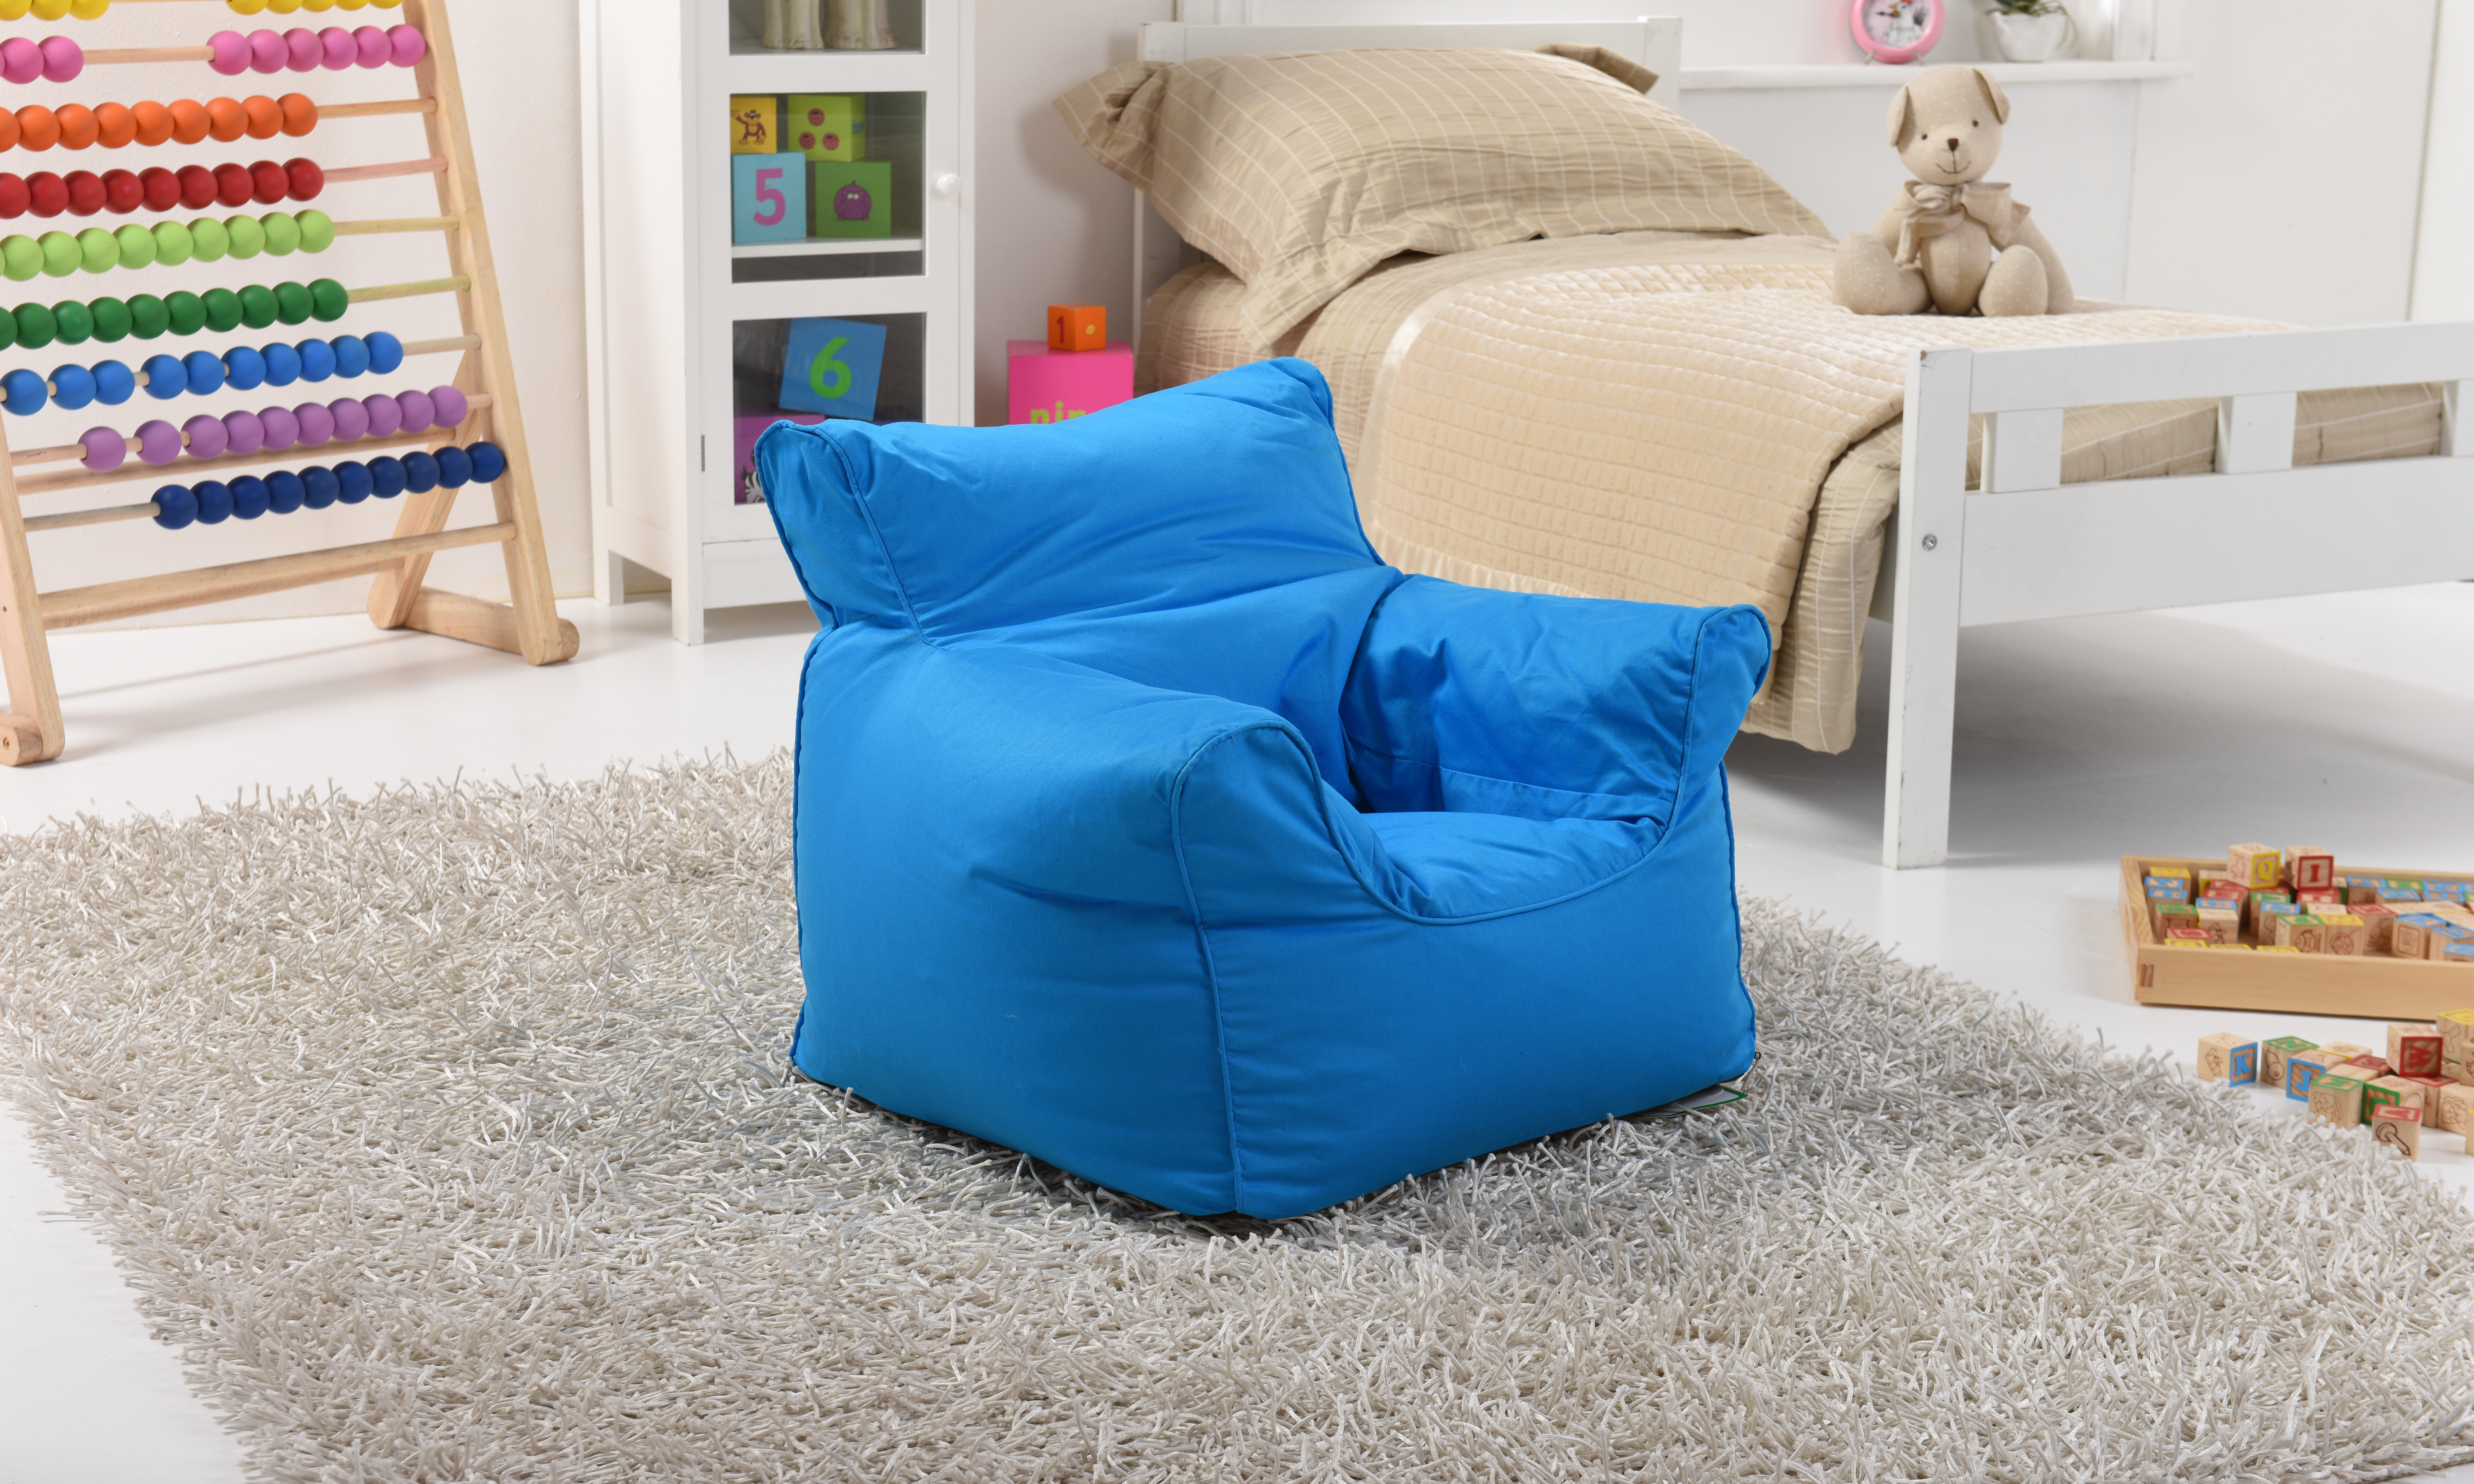 Lancashire Textiles Kids Mini Bean Bags Chairs for Boys and Girls